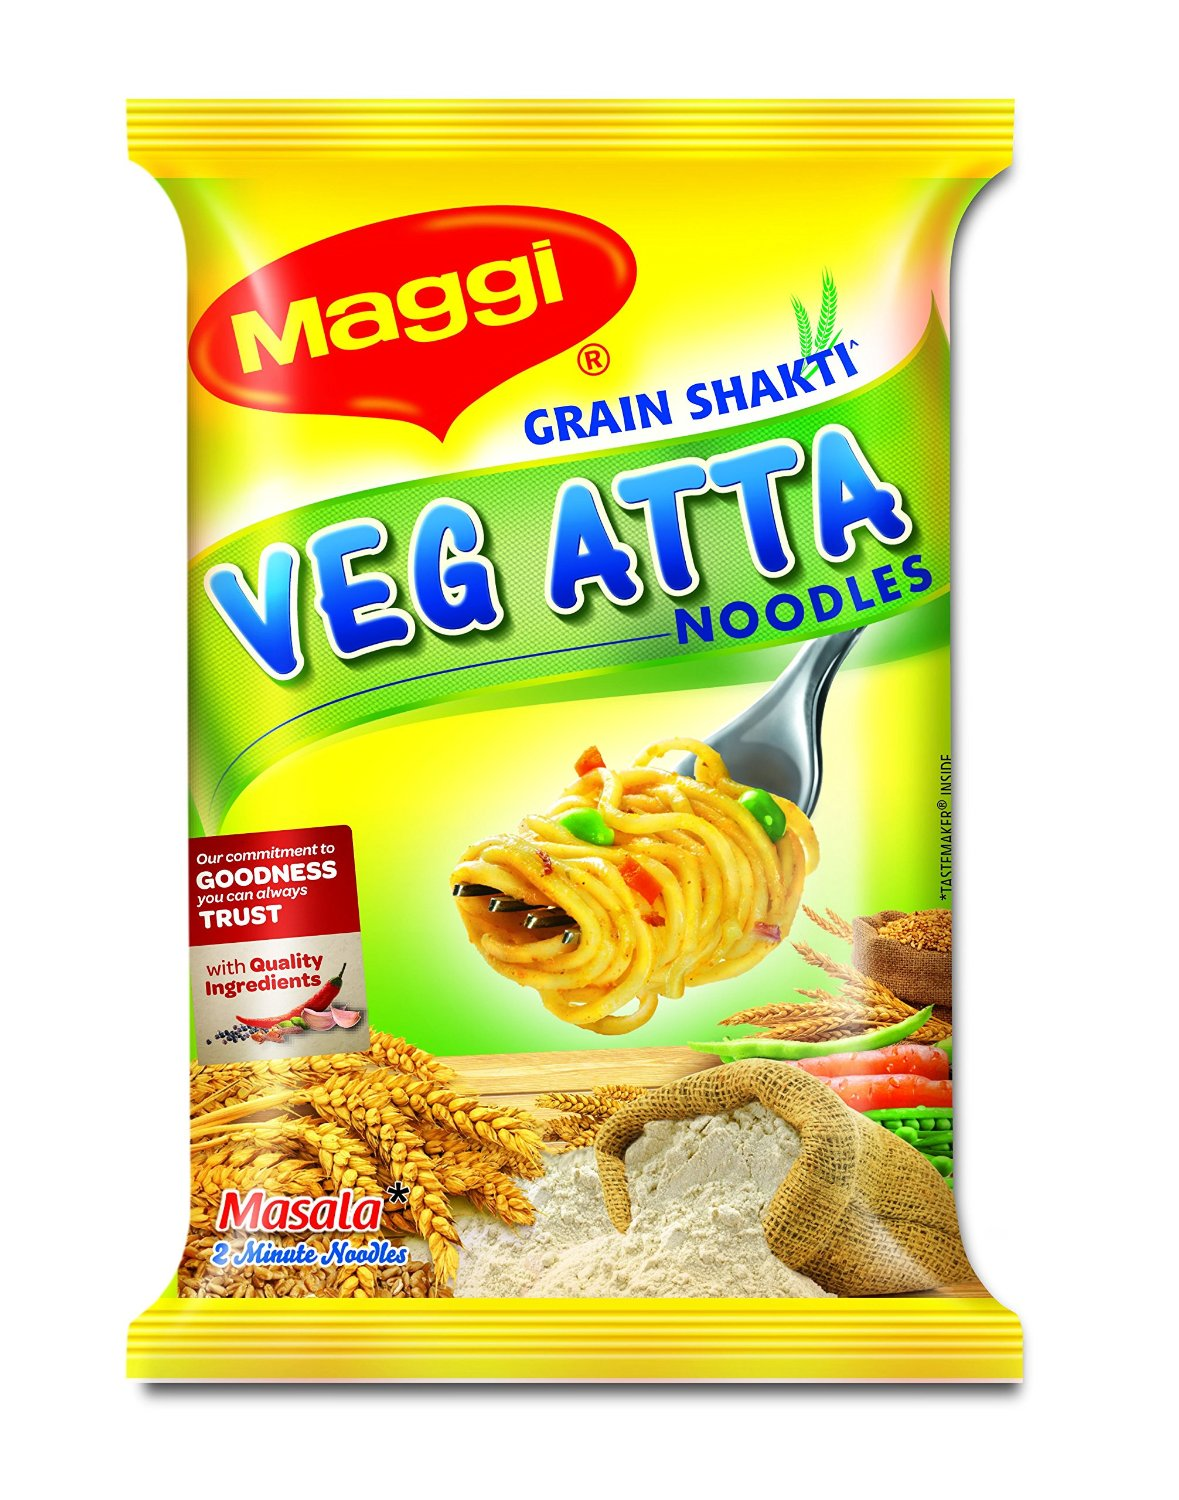 free executive summary maggi noodles Executive summary this report required spending great time on analyzing tones of marketing related information from innumerable sources of nestle's powerful brand maggi instant noodles.